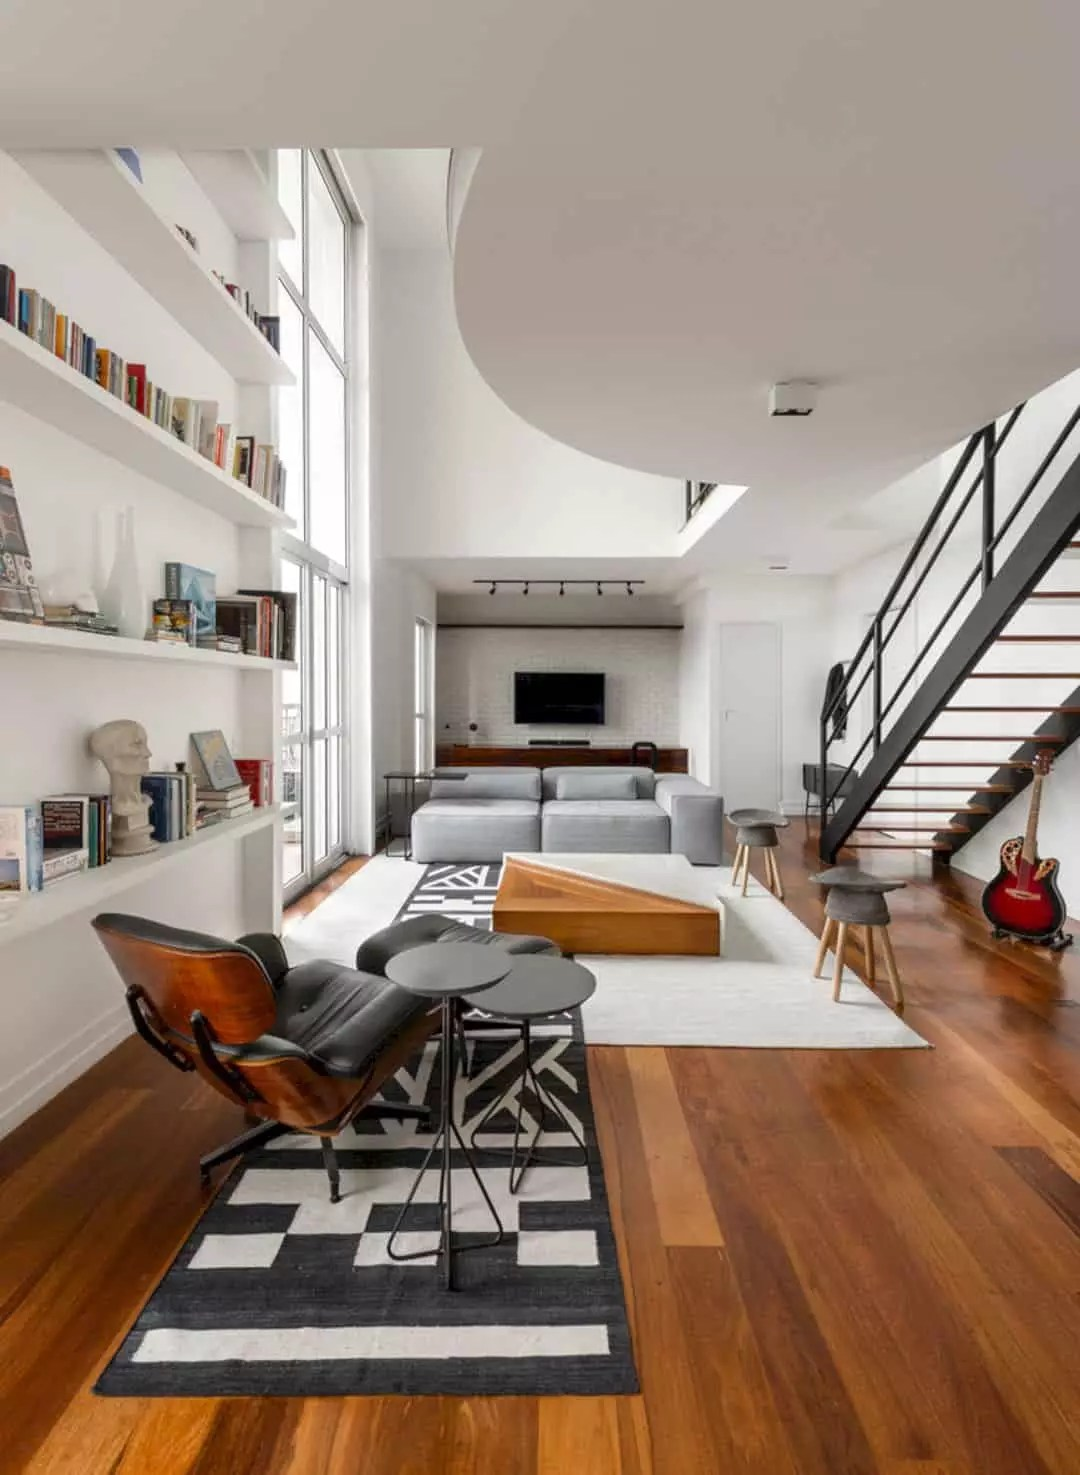 Loft JD: A Loft with Minimalist Interior and Sophisticated Touch